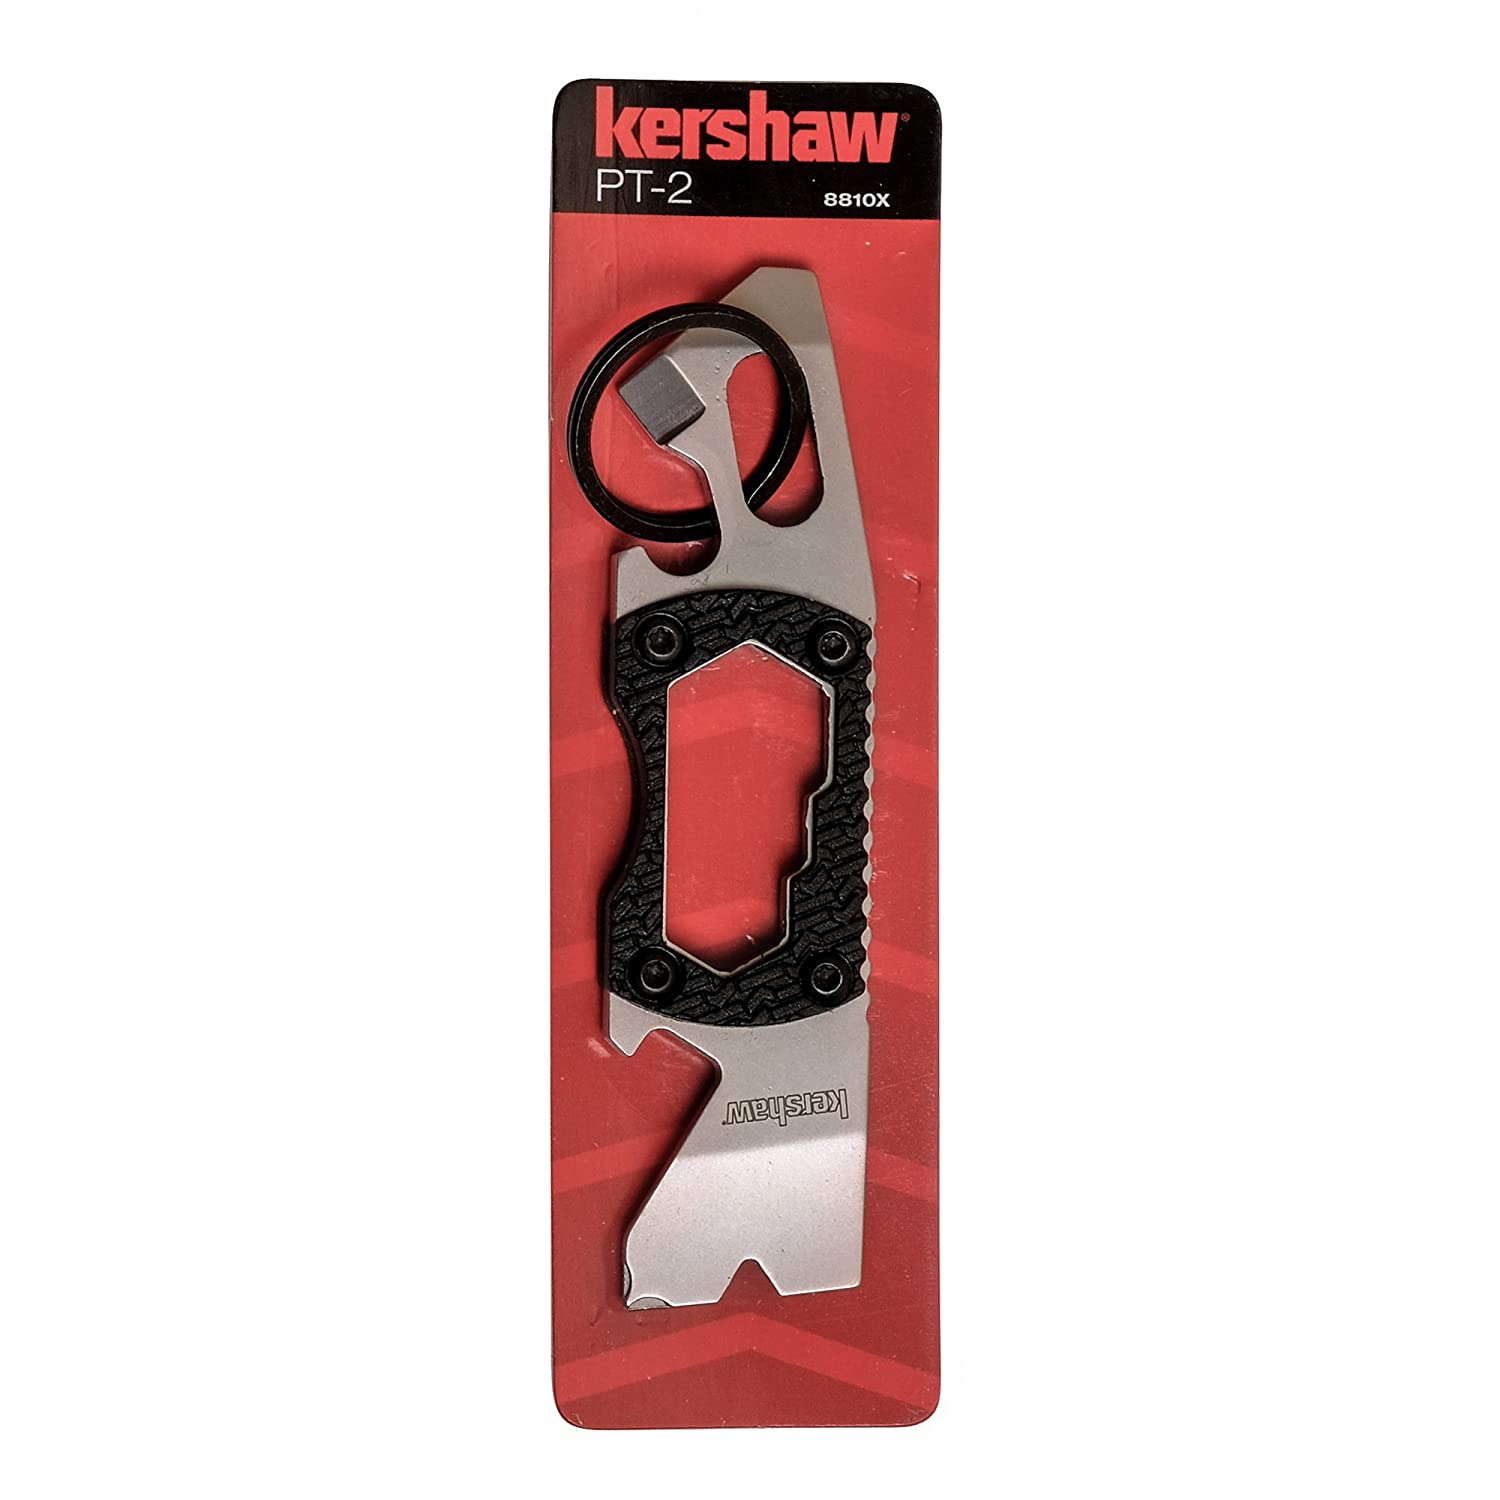 Kershaw PT-2 Compact Keychain Pry Tool (8810X); Features Bottle Opener, Two Screwdriver Tips, Pry Bar, Wire Scraper, Three Hex Drives; Made of ...